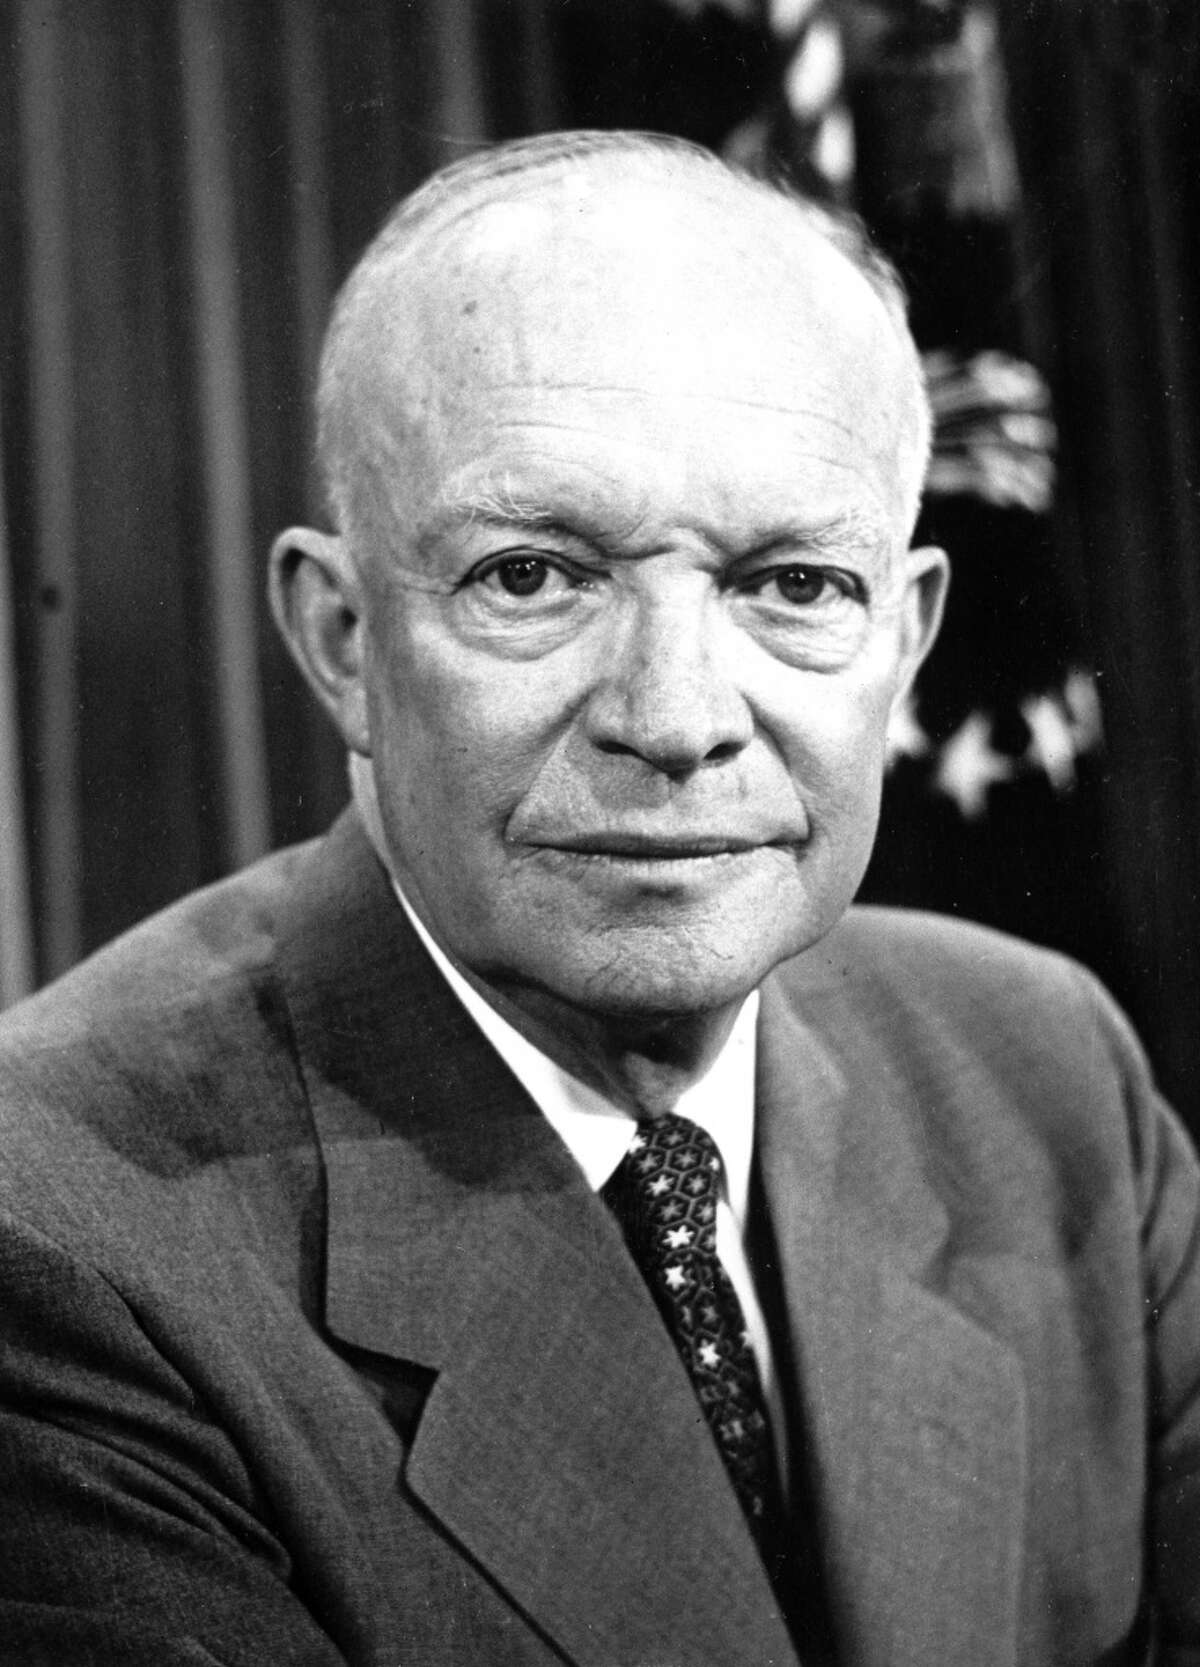 FACT OR FICTION? President Dwight D. Eisenhower coached football in San Antonio.